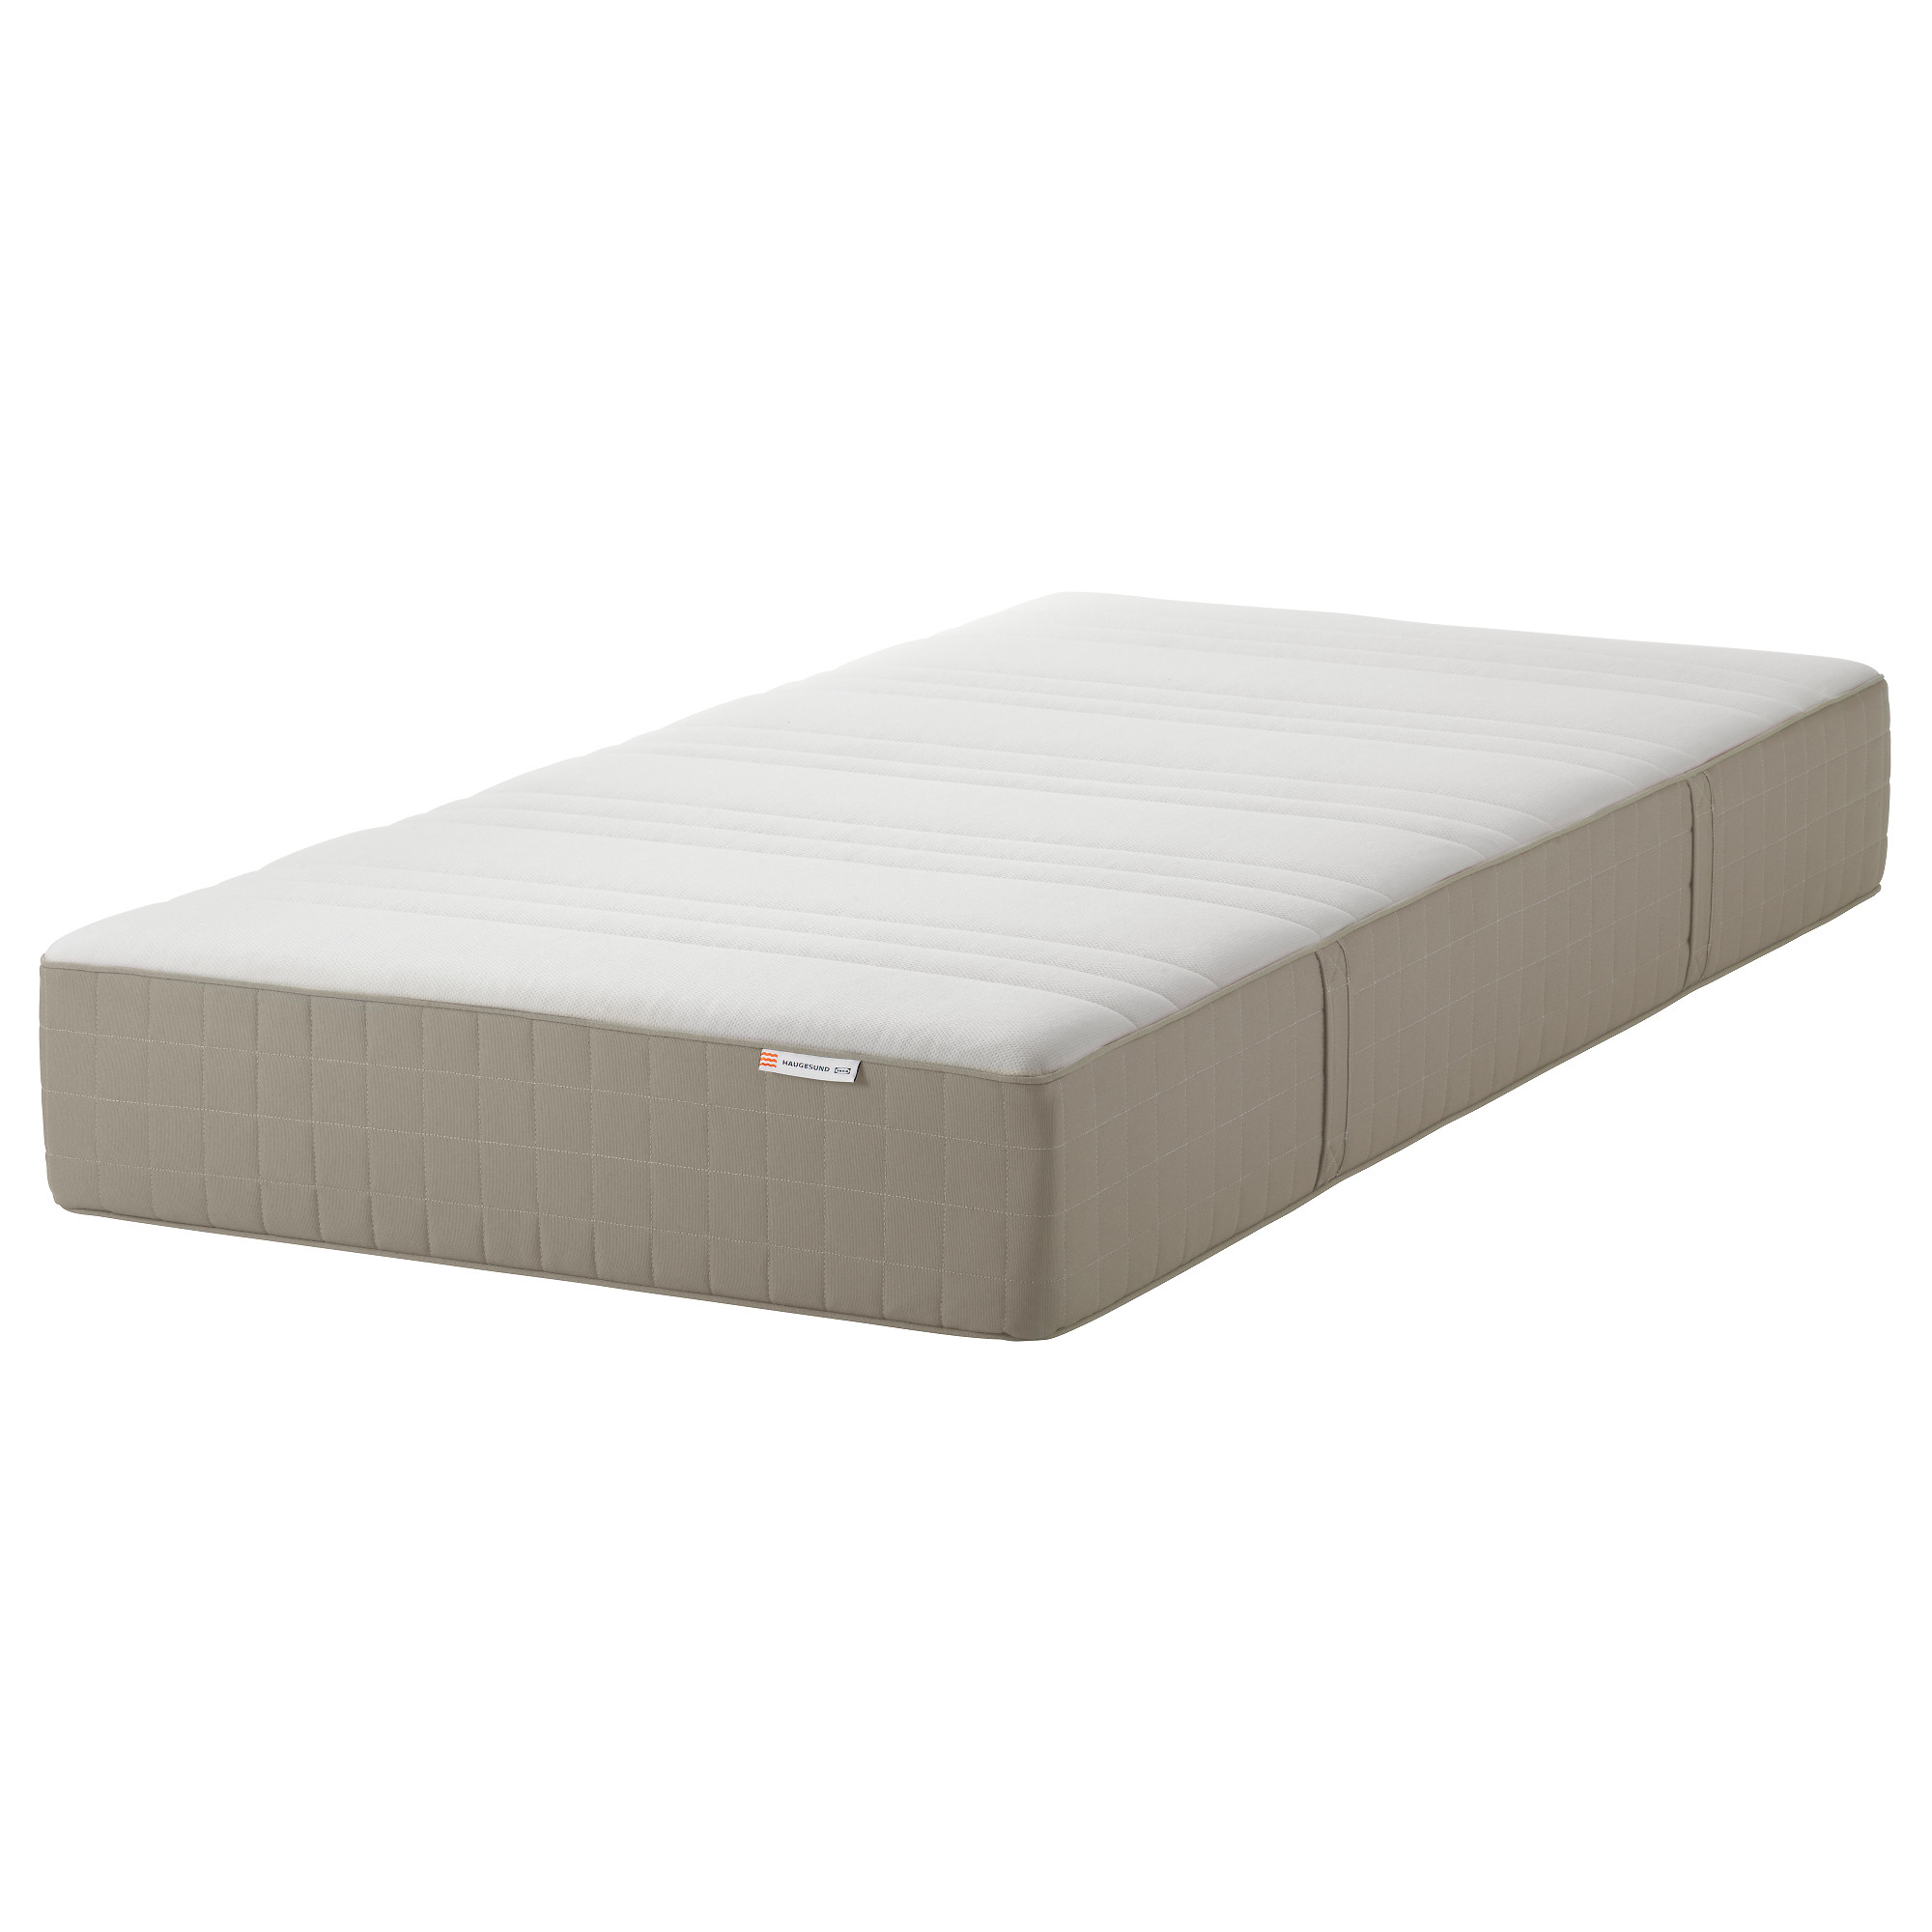 HAUGESUND Spring mattress Queen medium firm dark beige IKEA